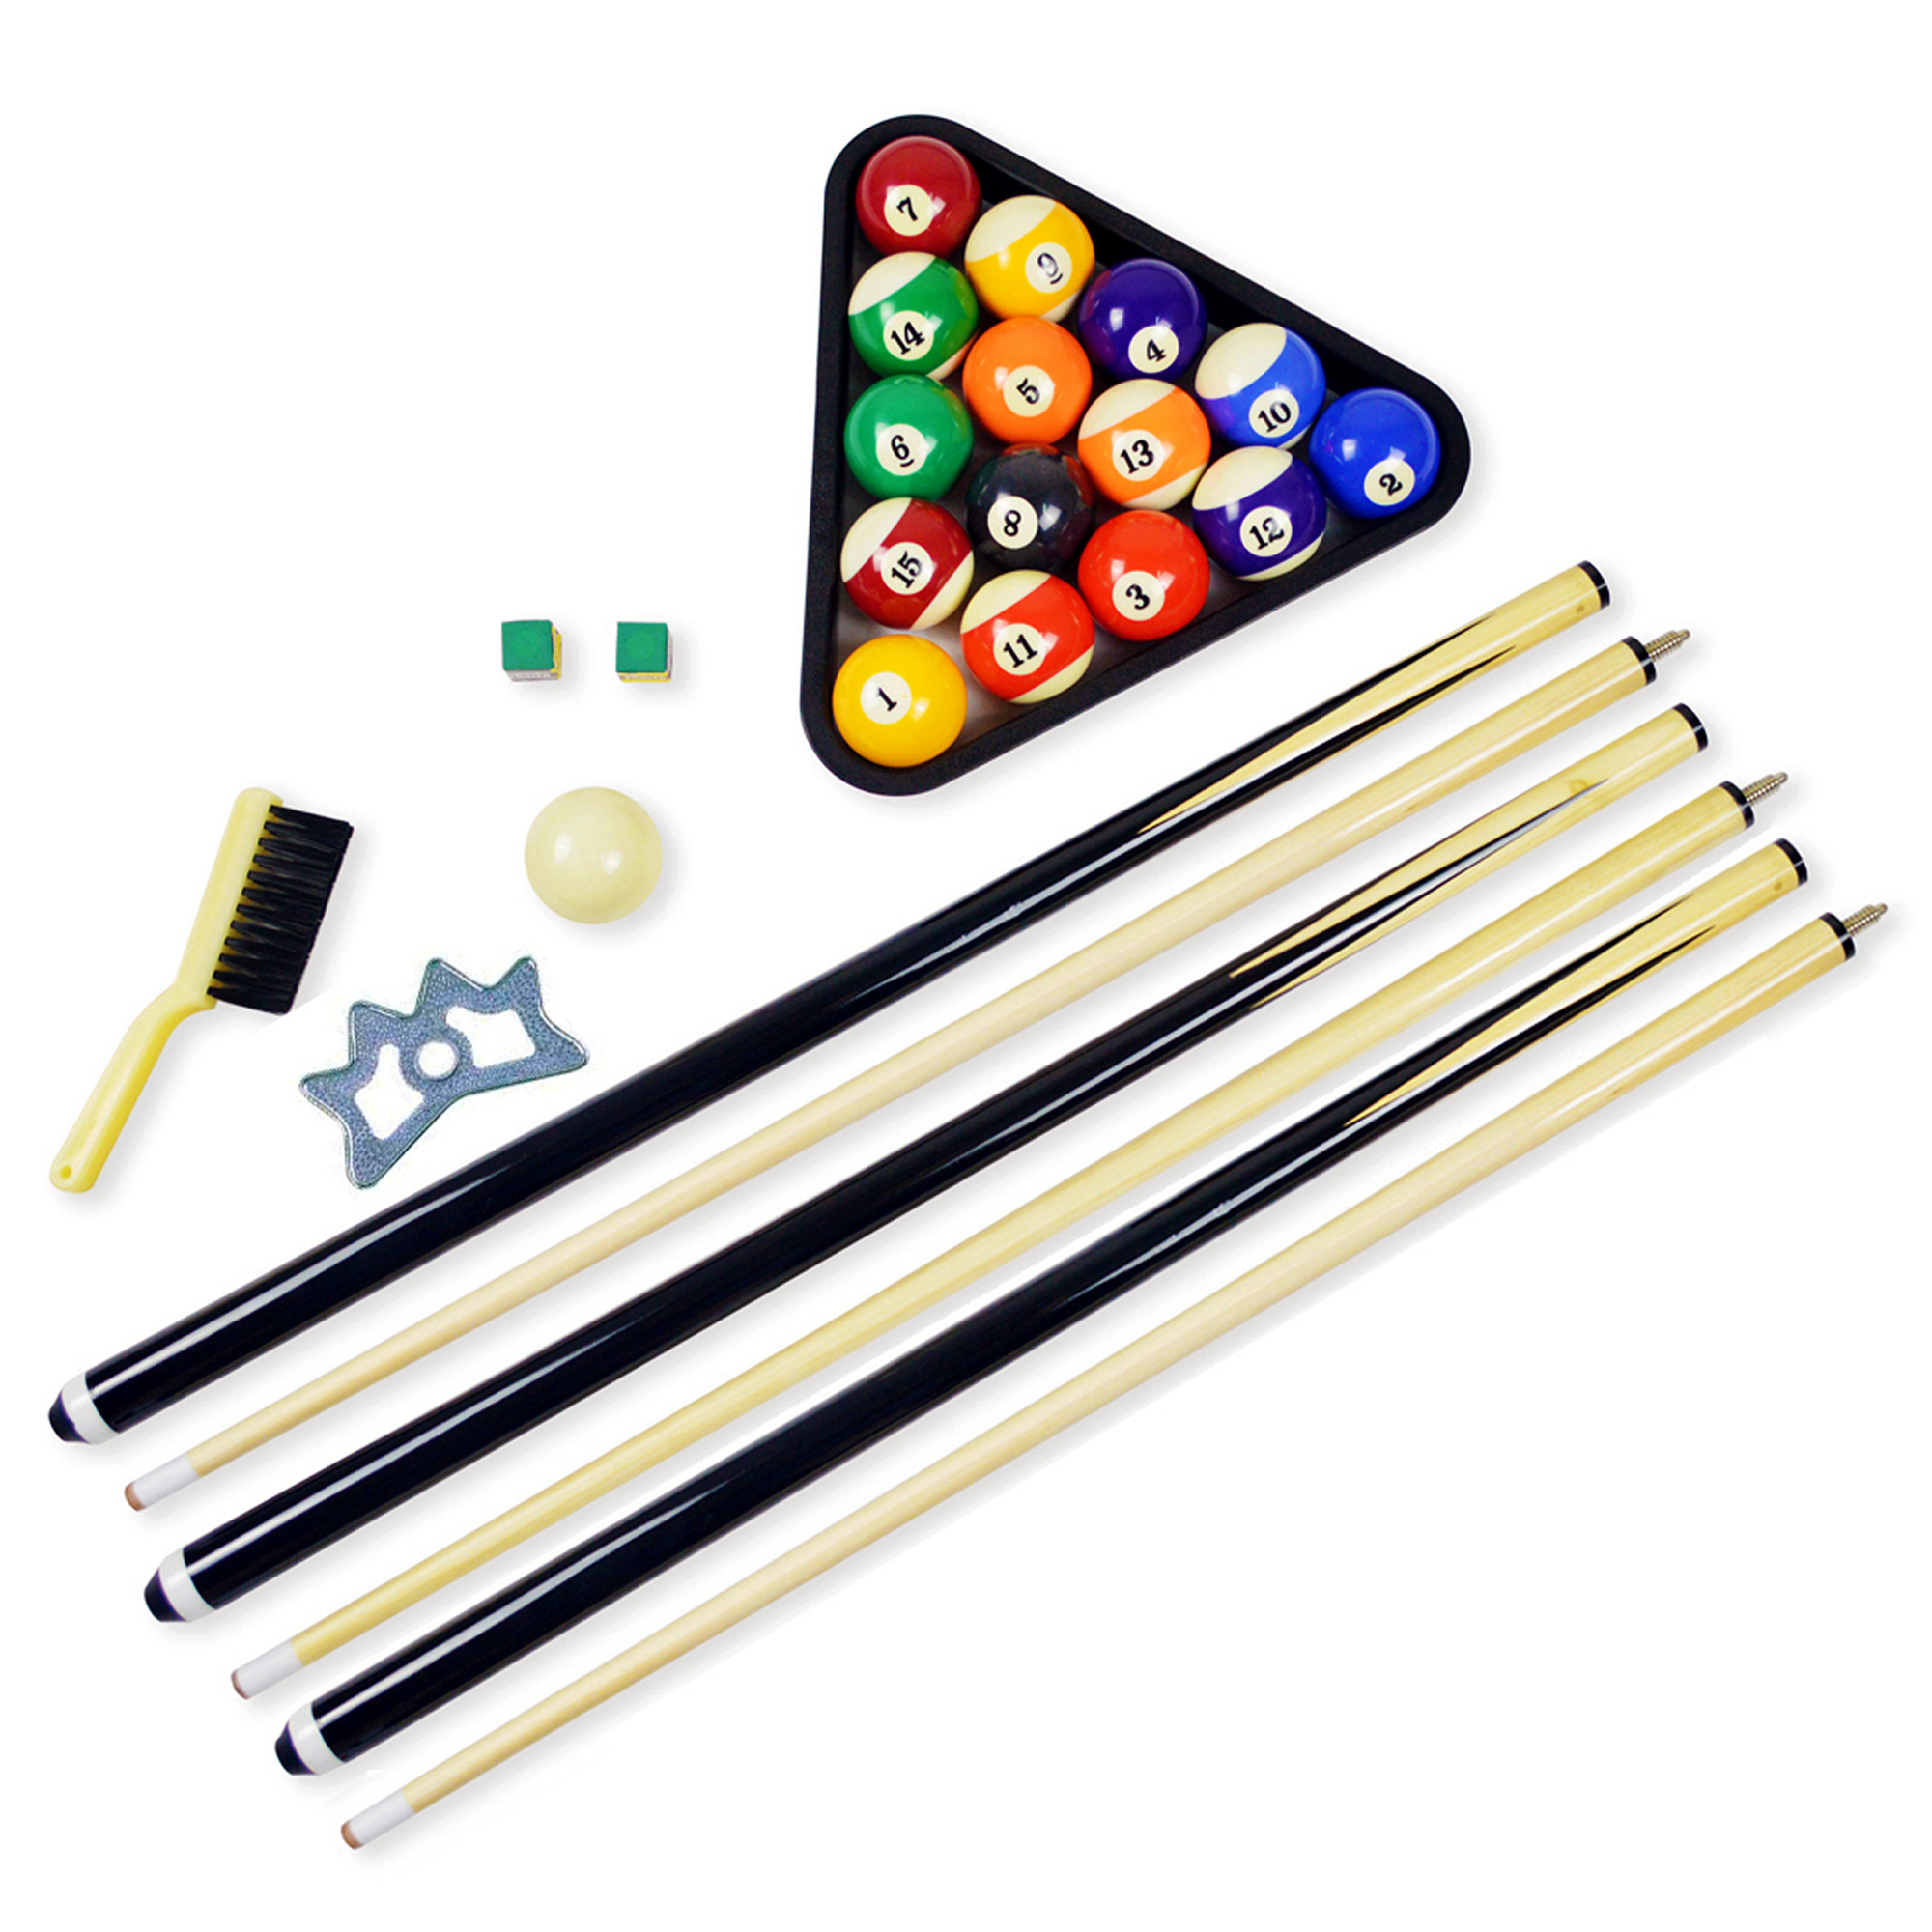 Hathaway Pool Table Billiard Accessory Kit by Blue Wave